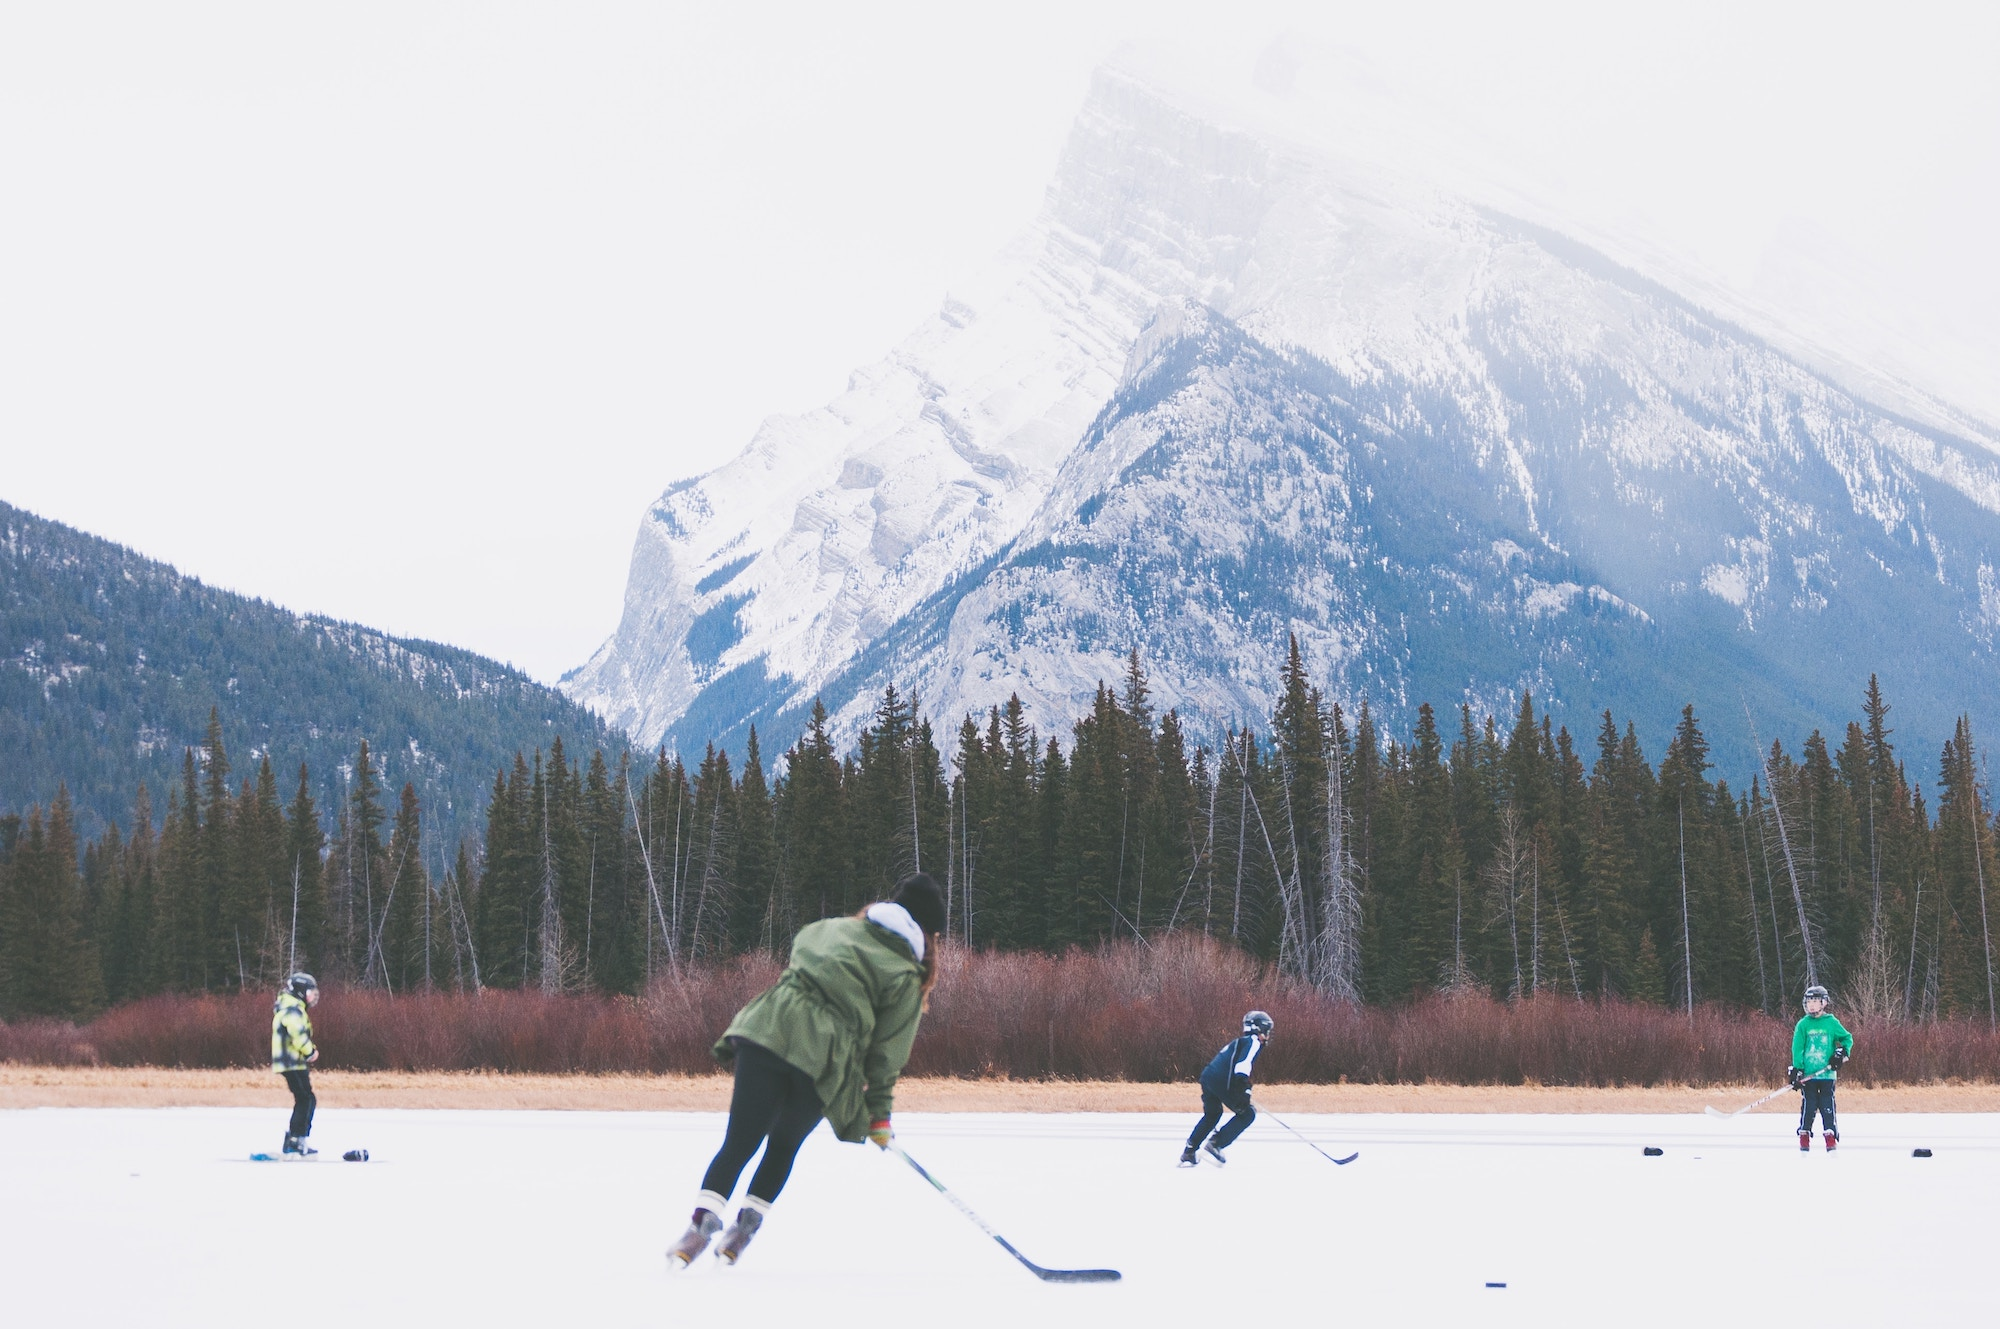 playing hockey outdoors